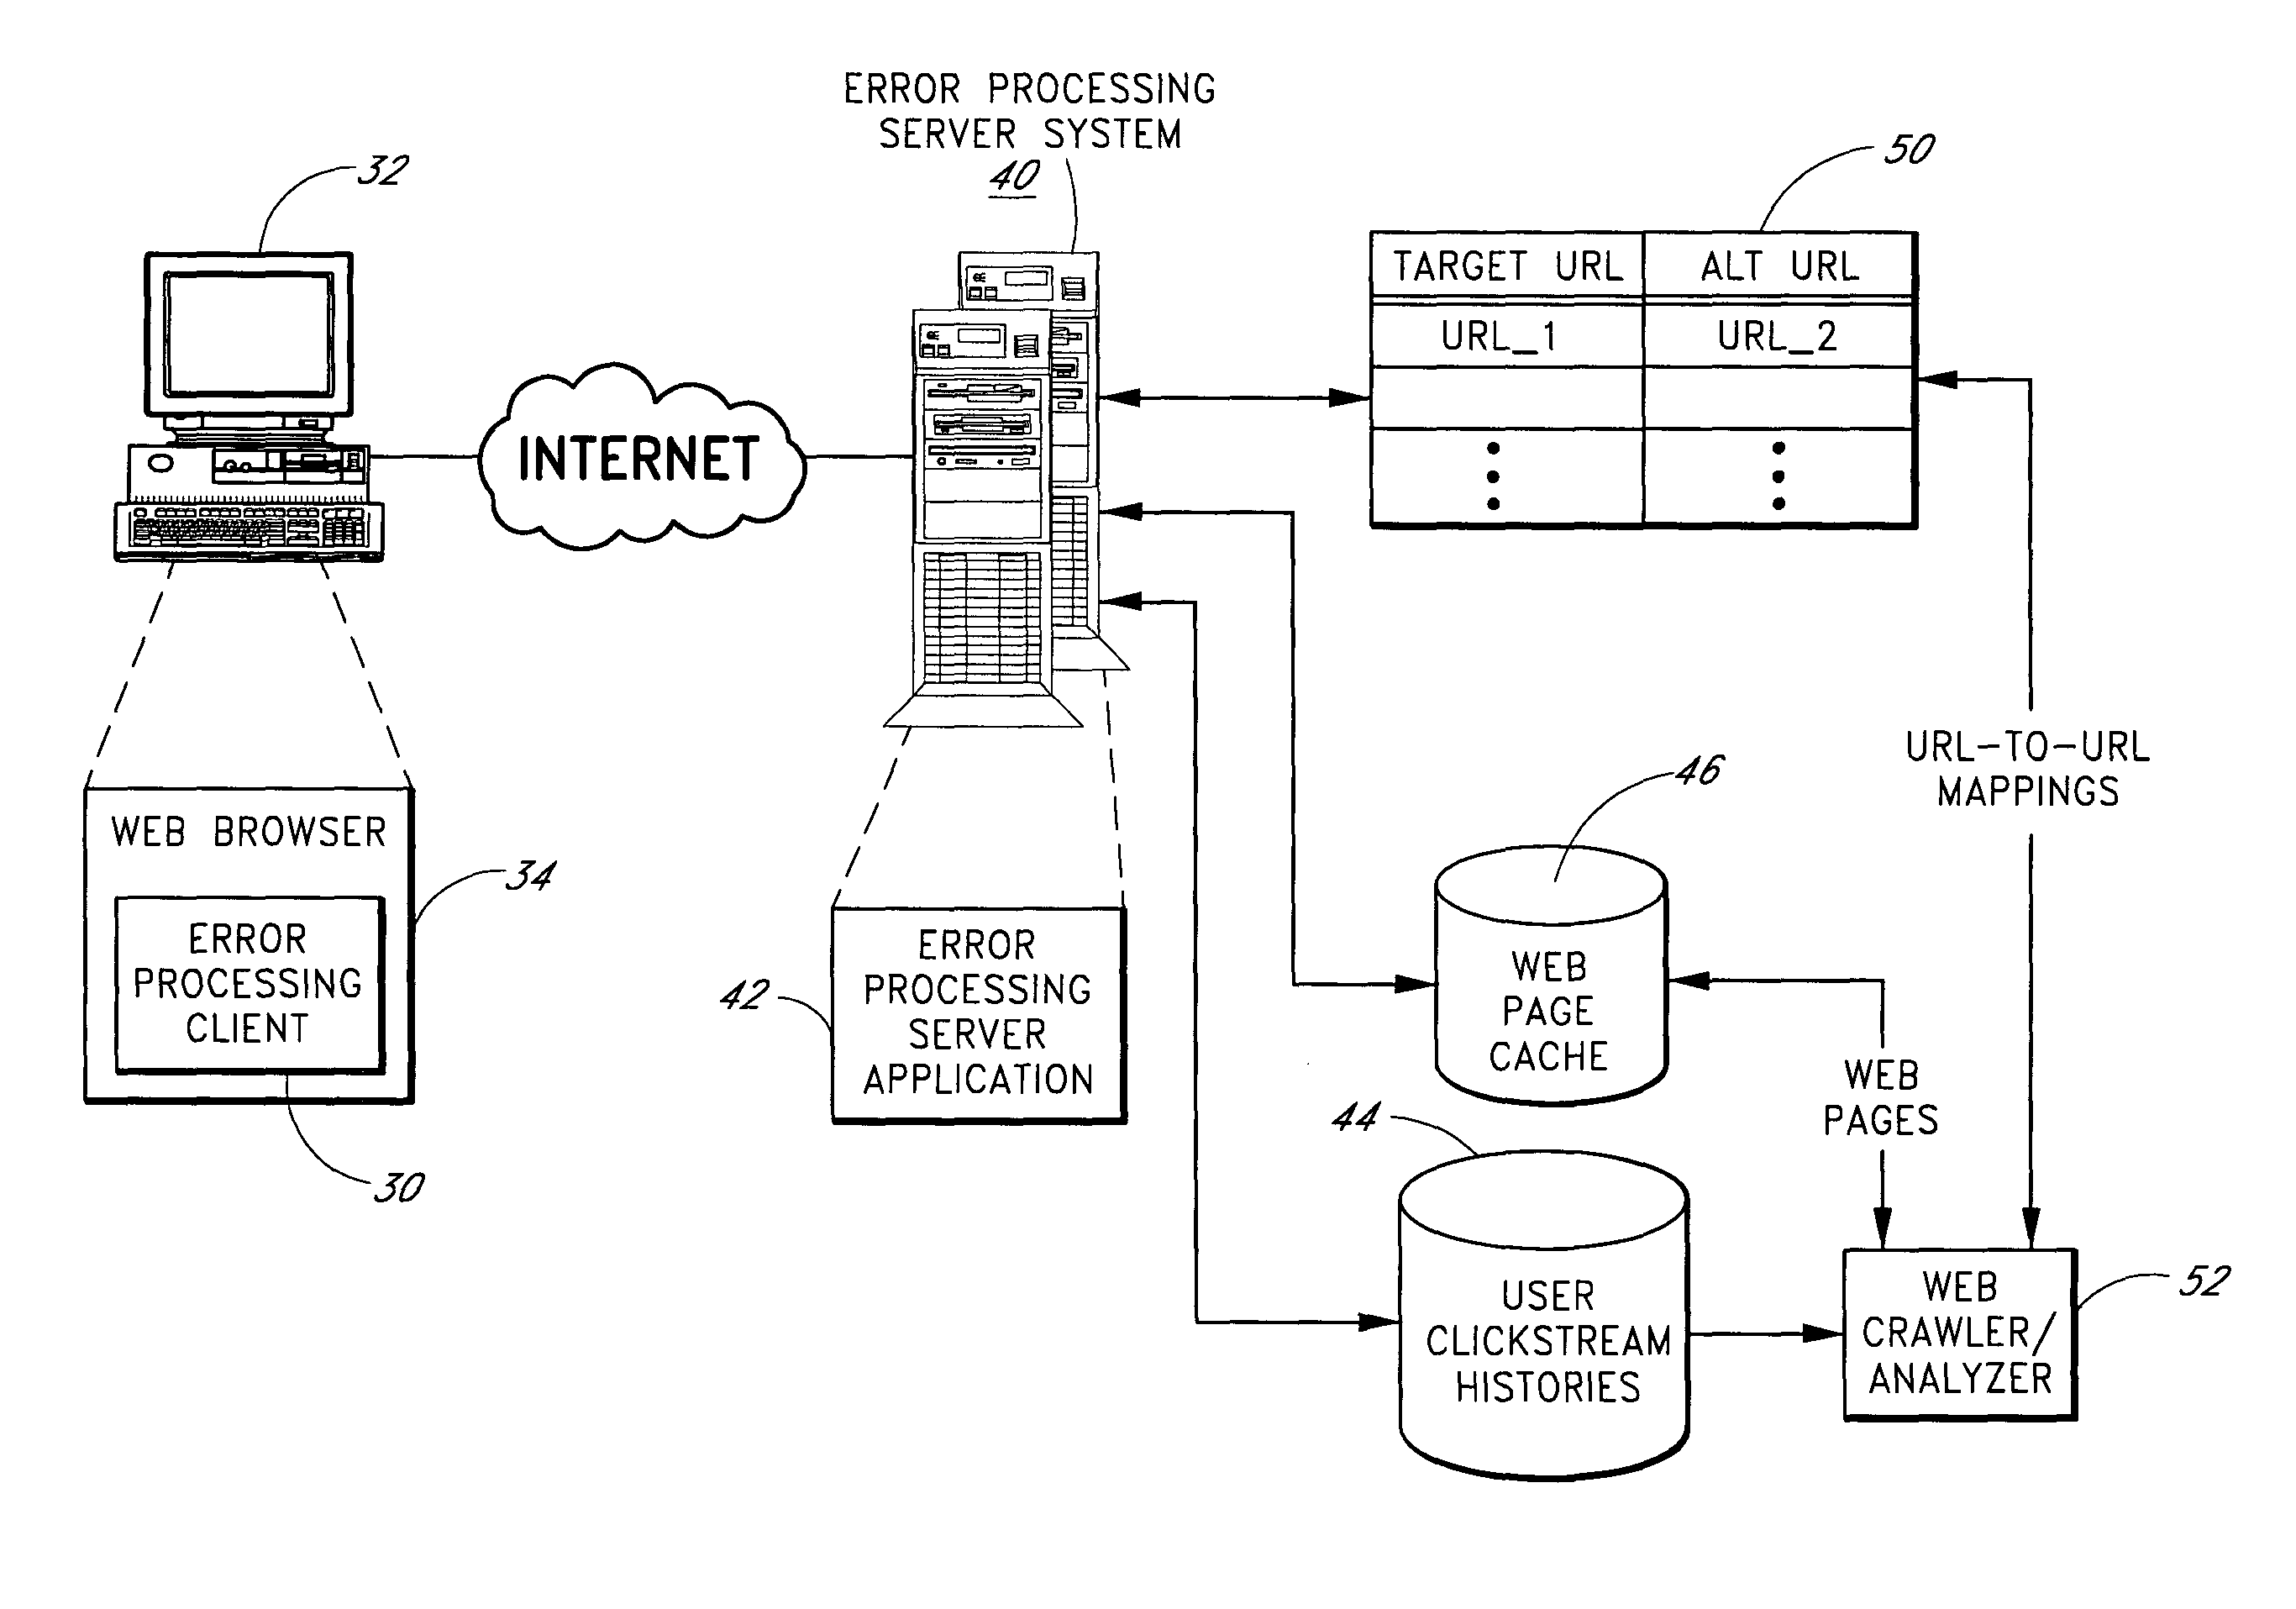 Armco  patent by Jeff Bezos from 2008 for error processing methods for providing responsive content to a user when a page load error occurs - US7325045